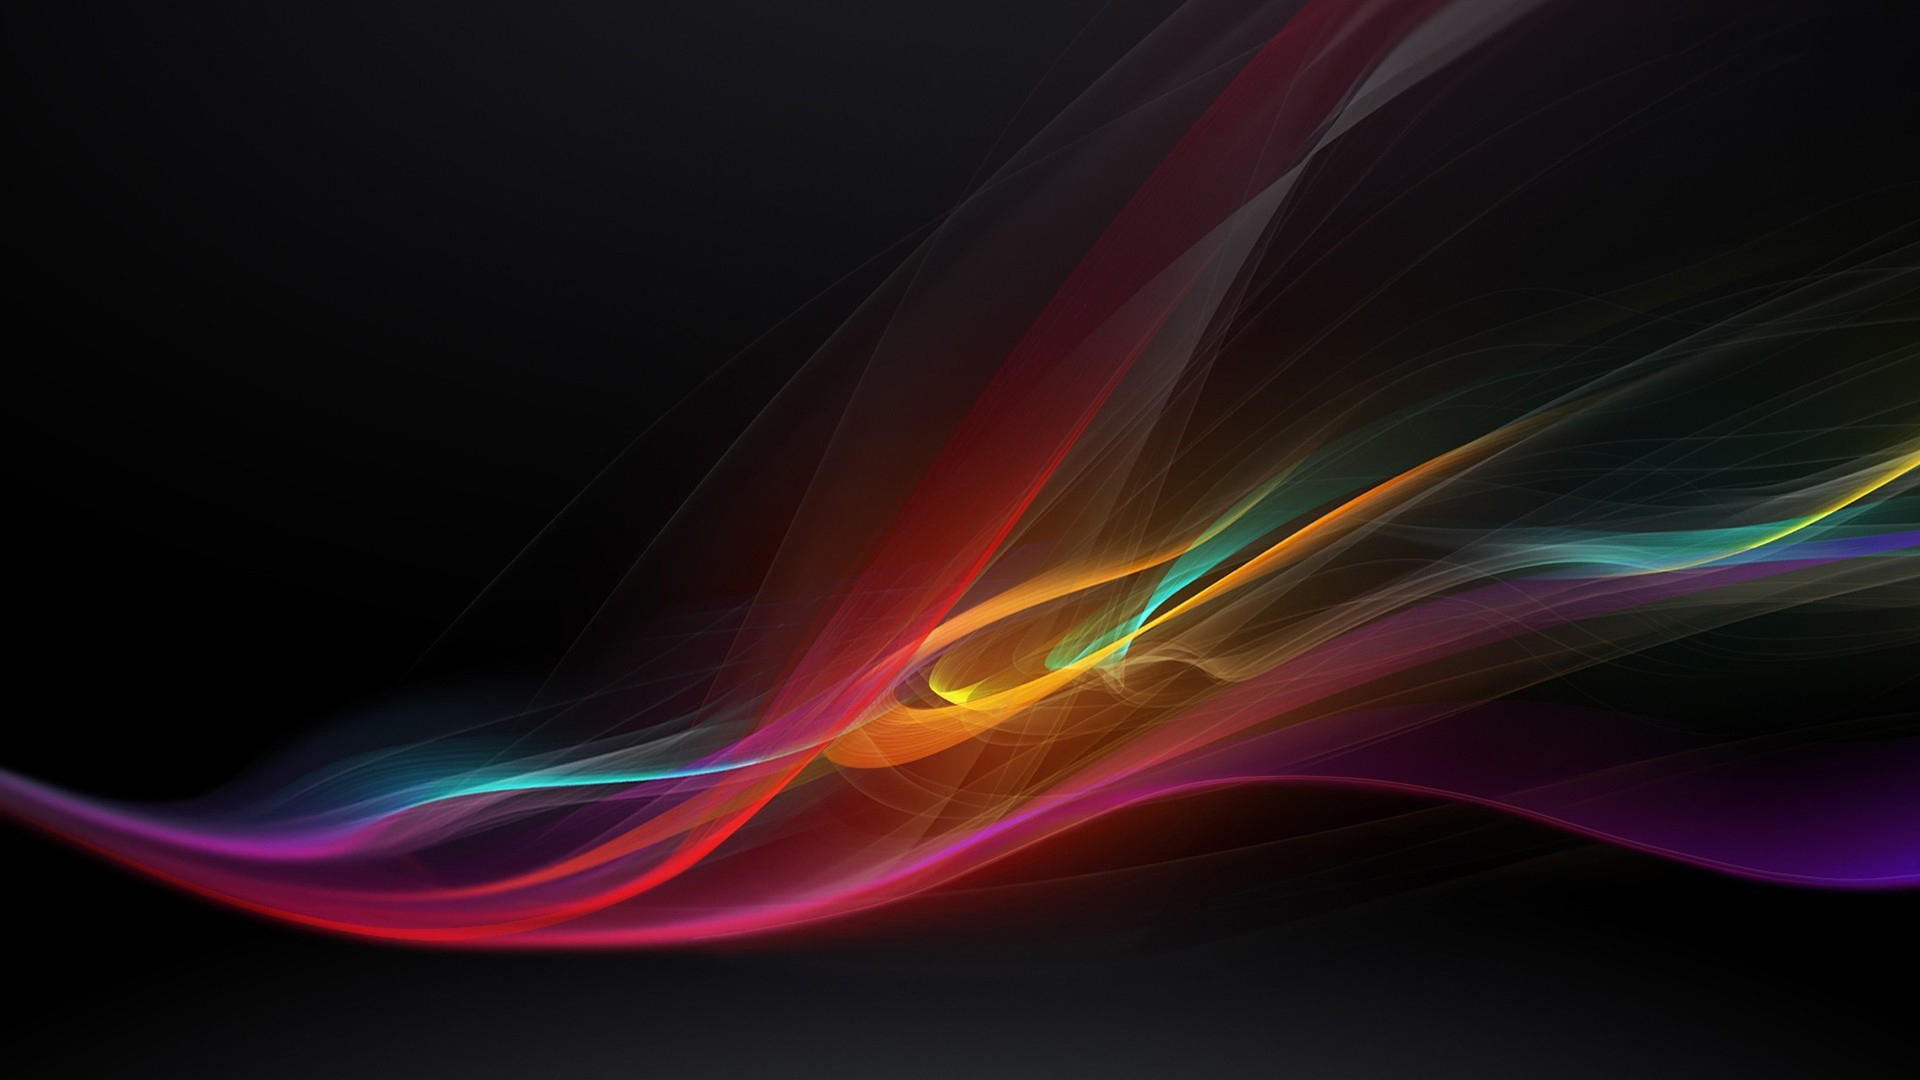 abstract wallsmax free hd wallpapers backgrounds